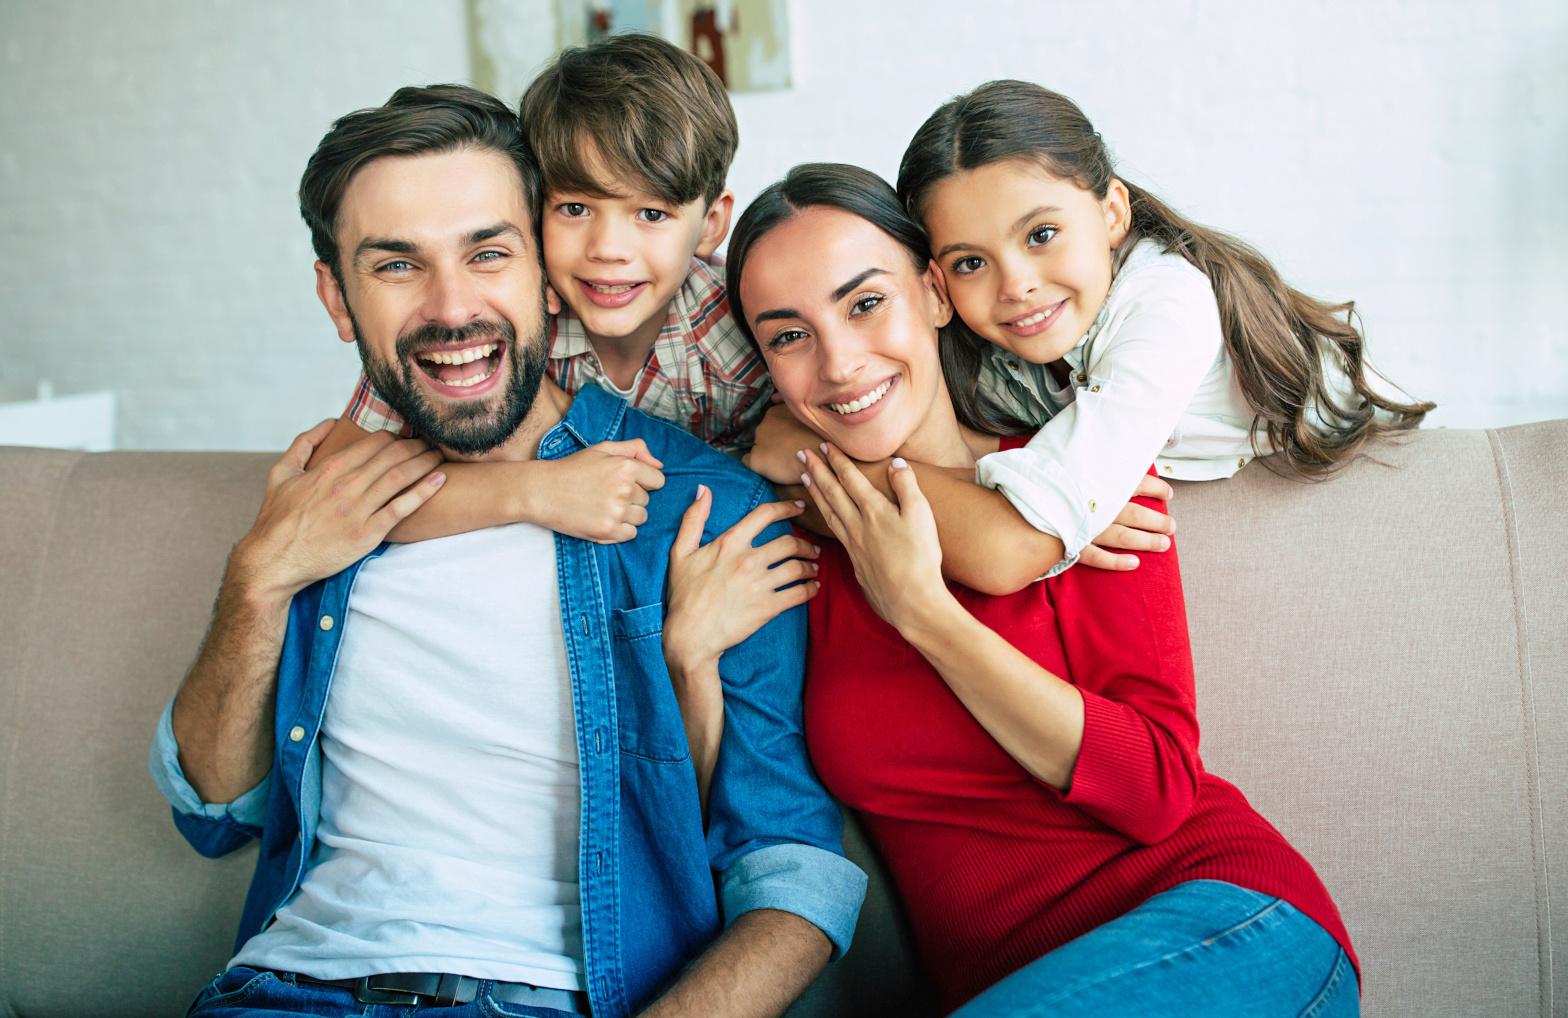 Get Life Insurance Now, Help Your Family or Business Later